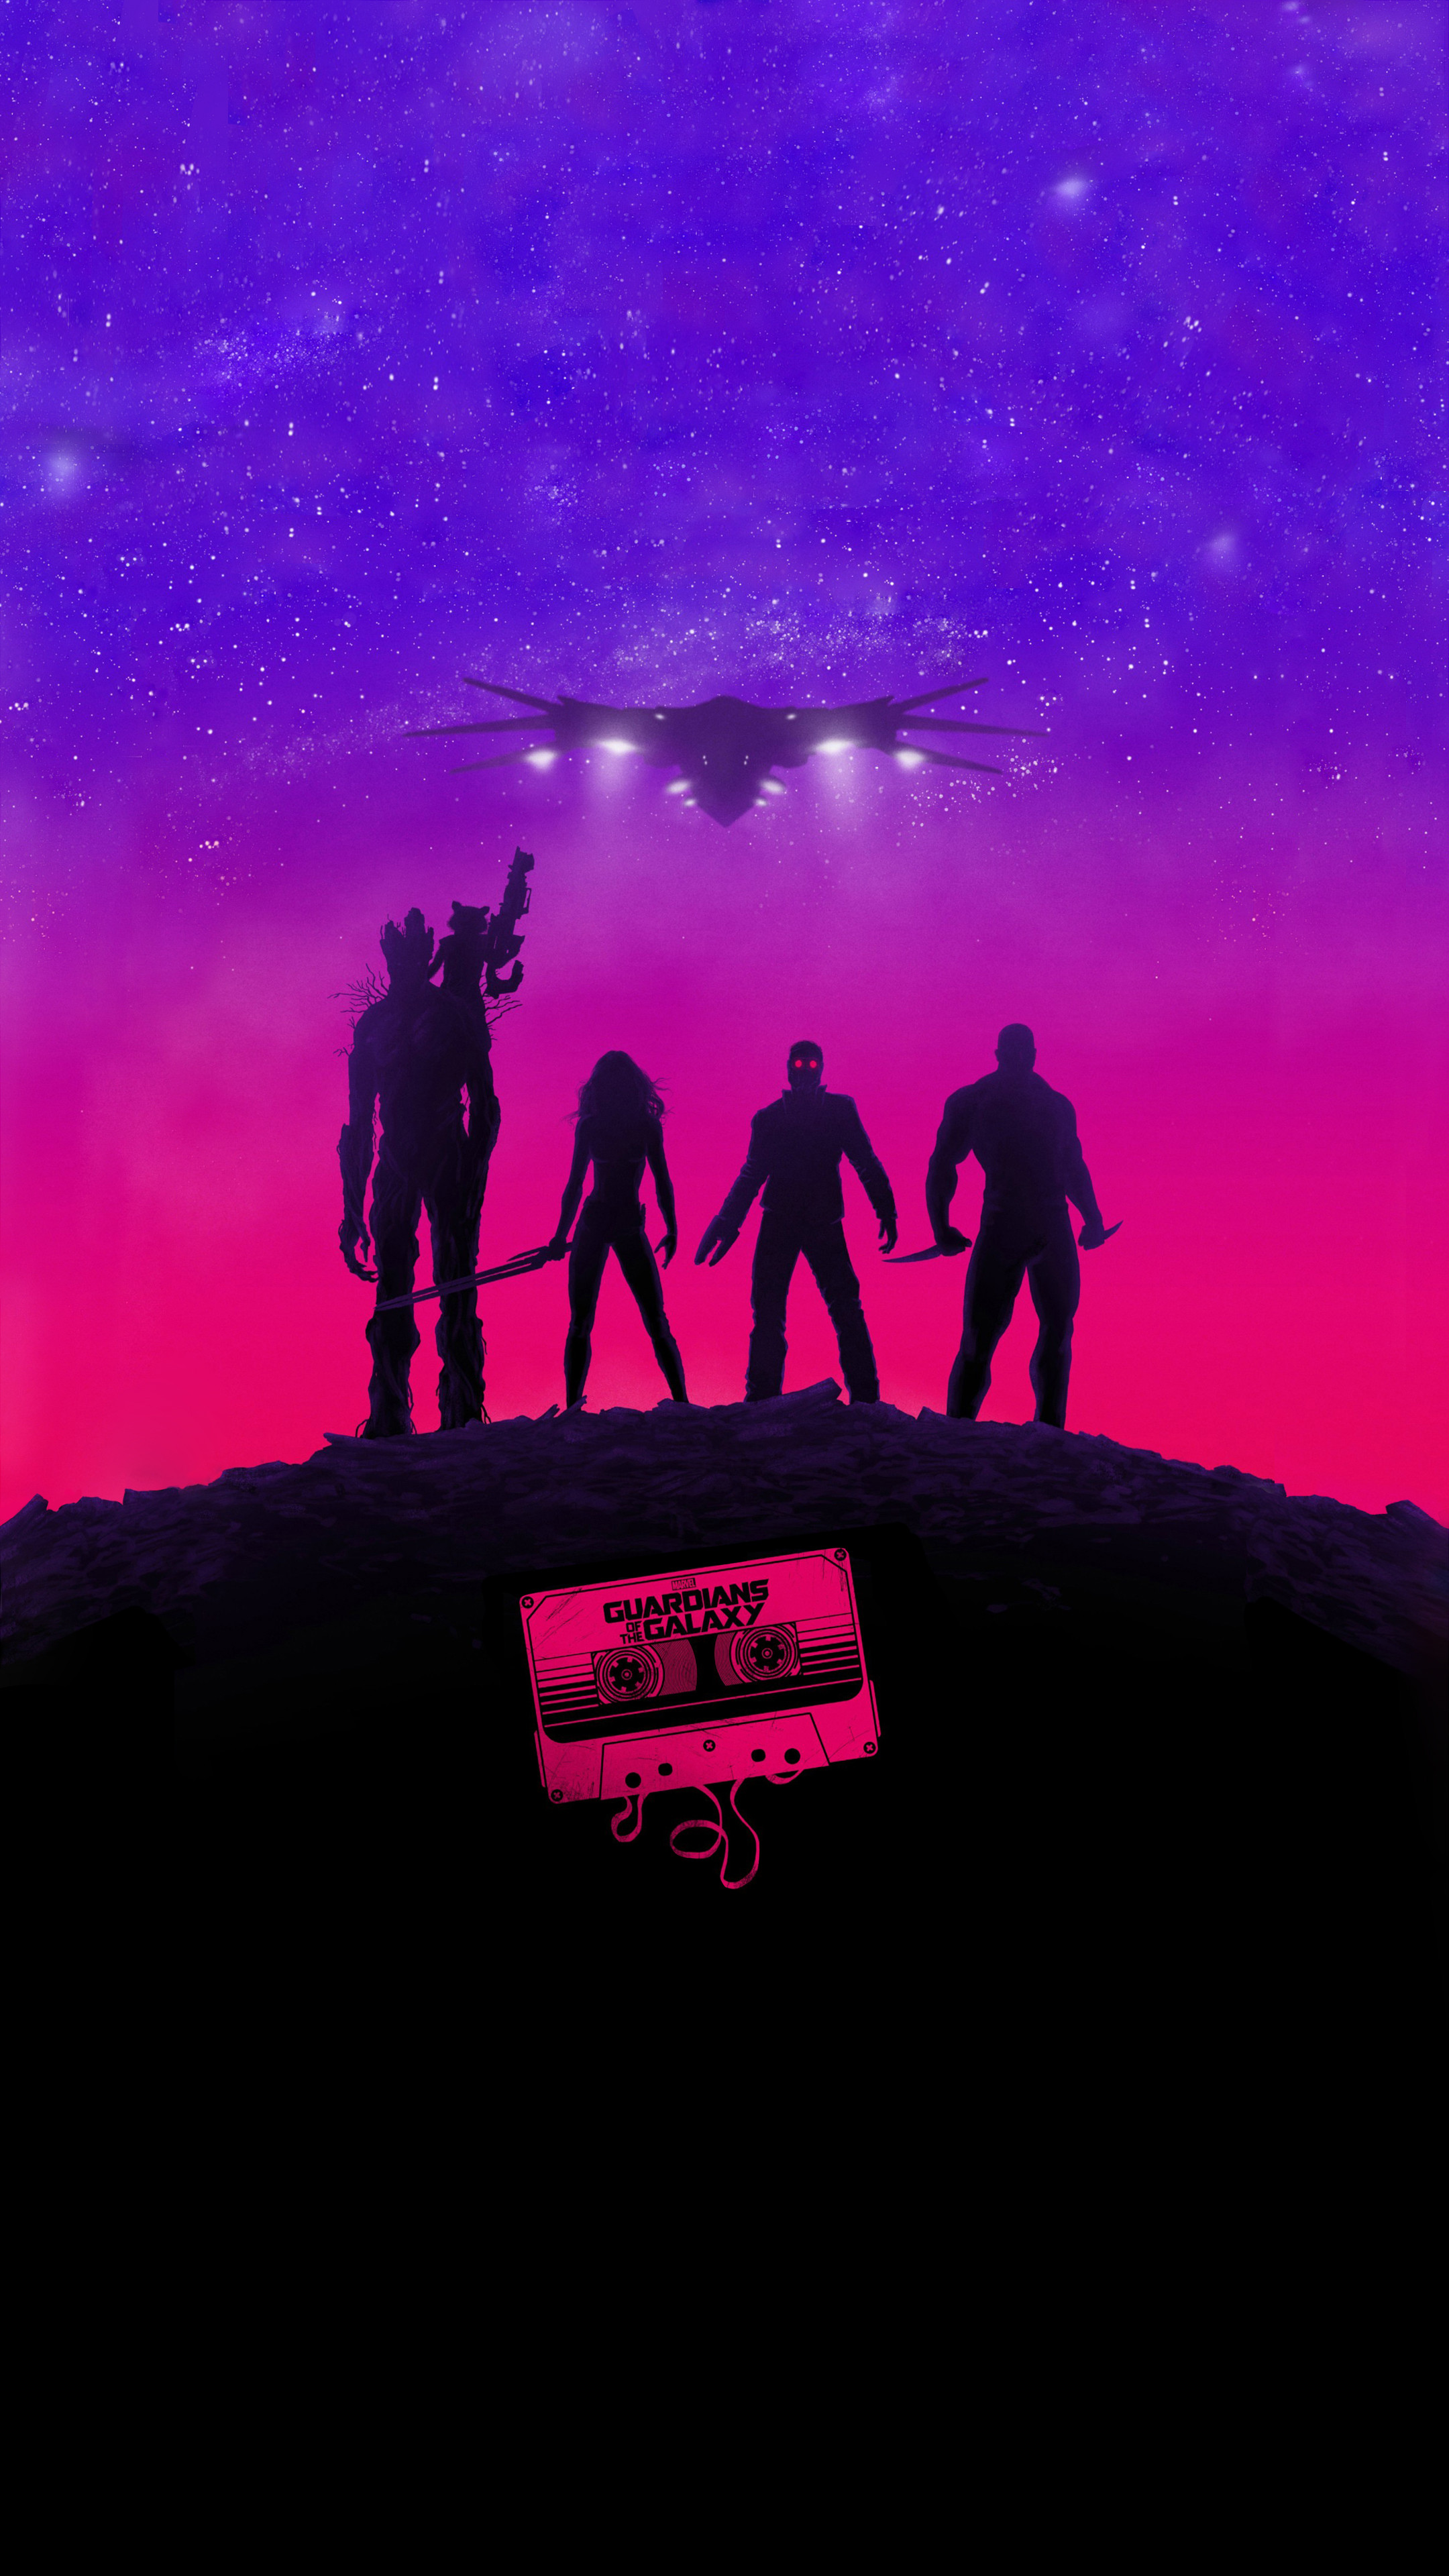 Guardians of the Galaxy     ScreenSavers com Guardians of the Galaxy